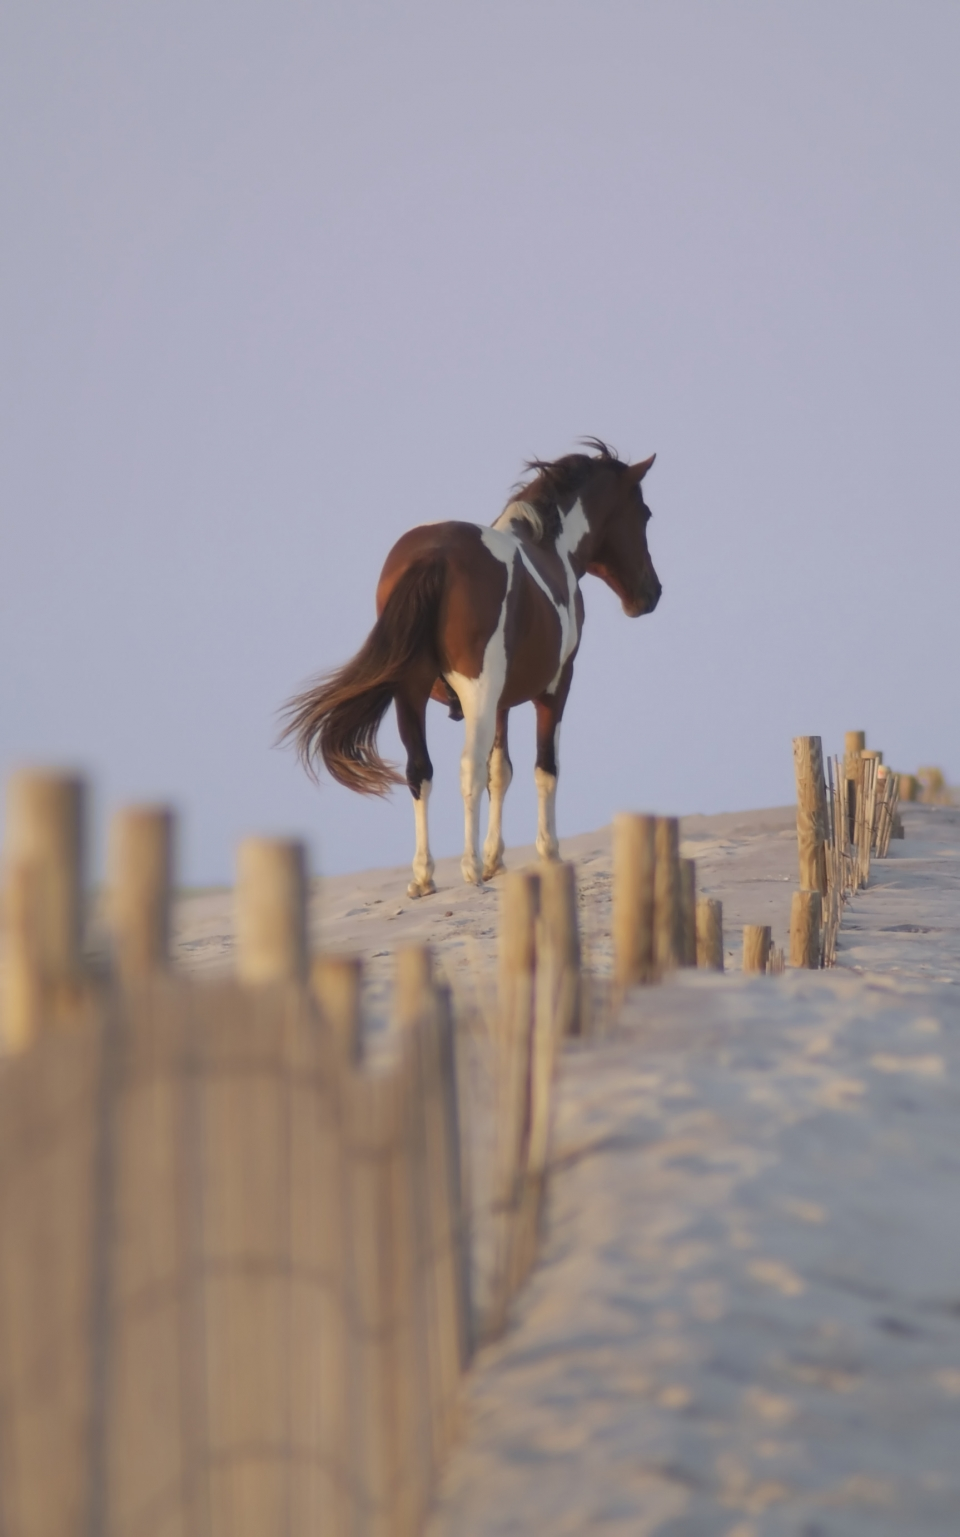 Horse next to a short fence on the white sands of Assateague Island